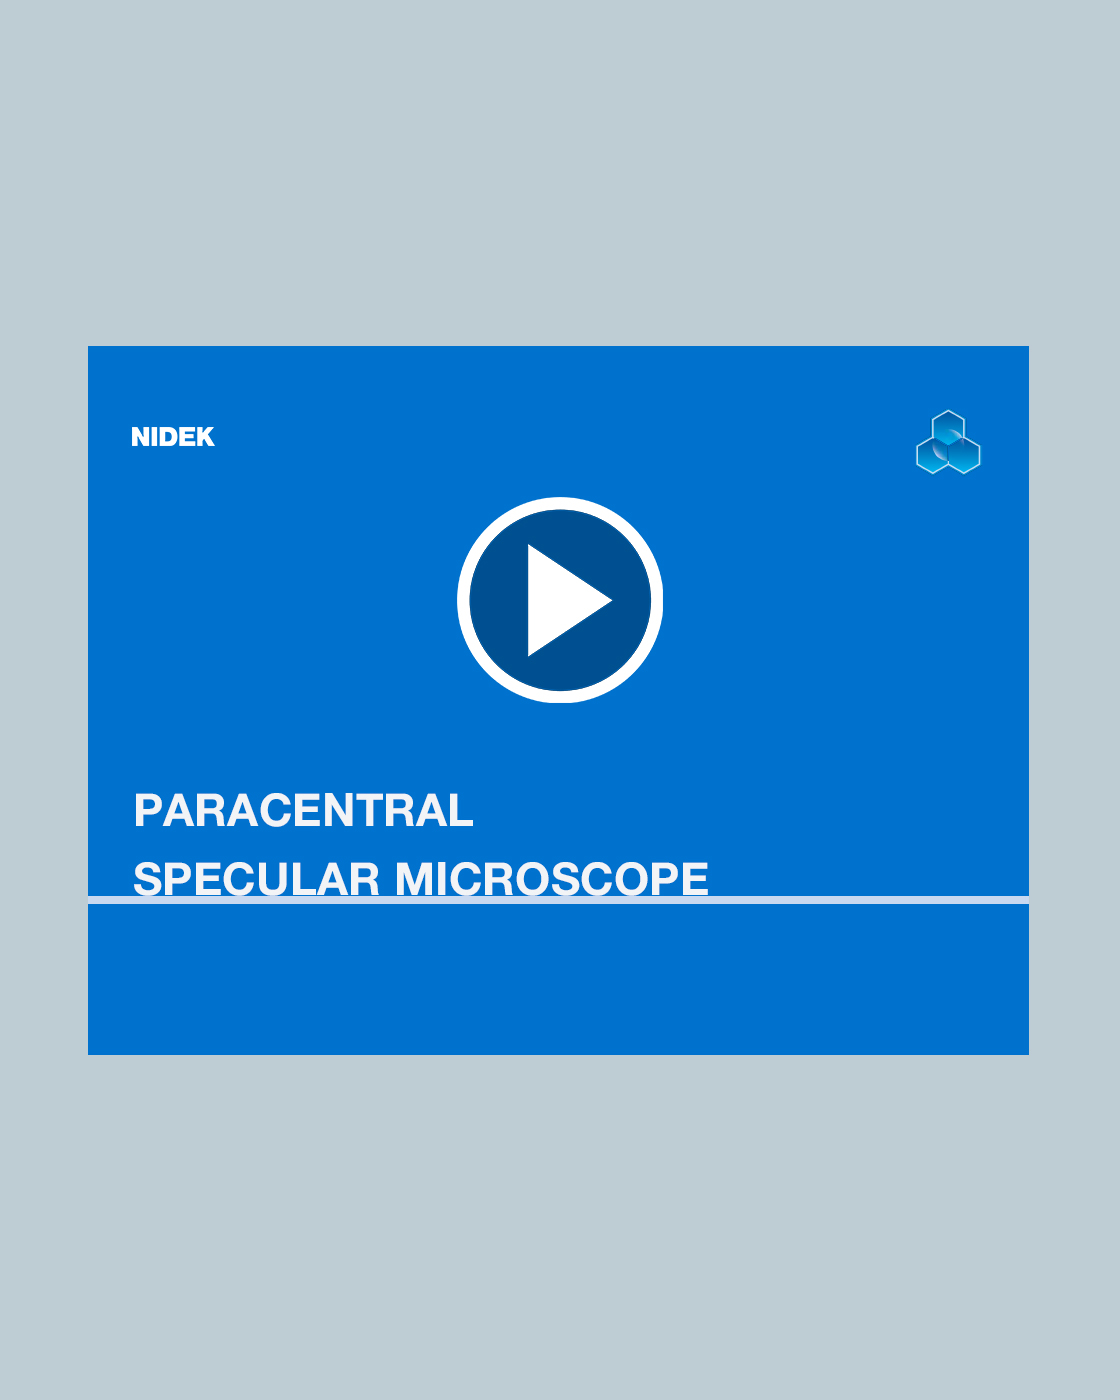 Introducing the CEM-530 Paracentral Specular Microscope